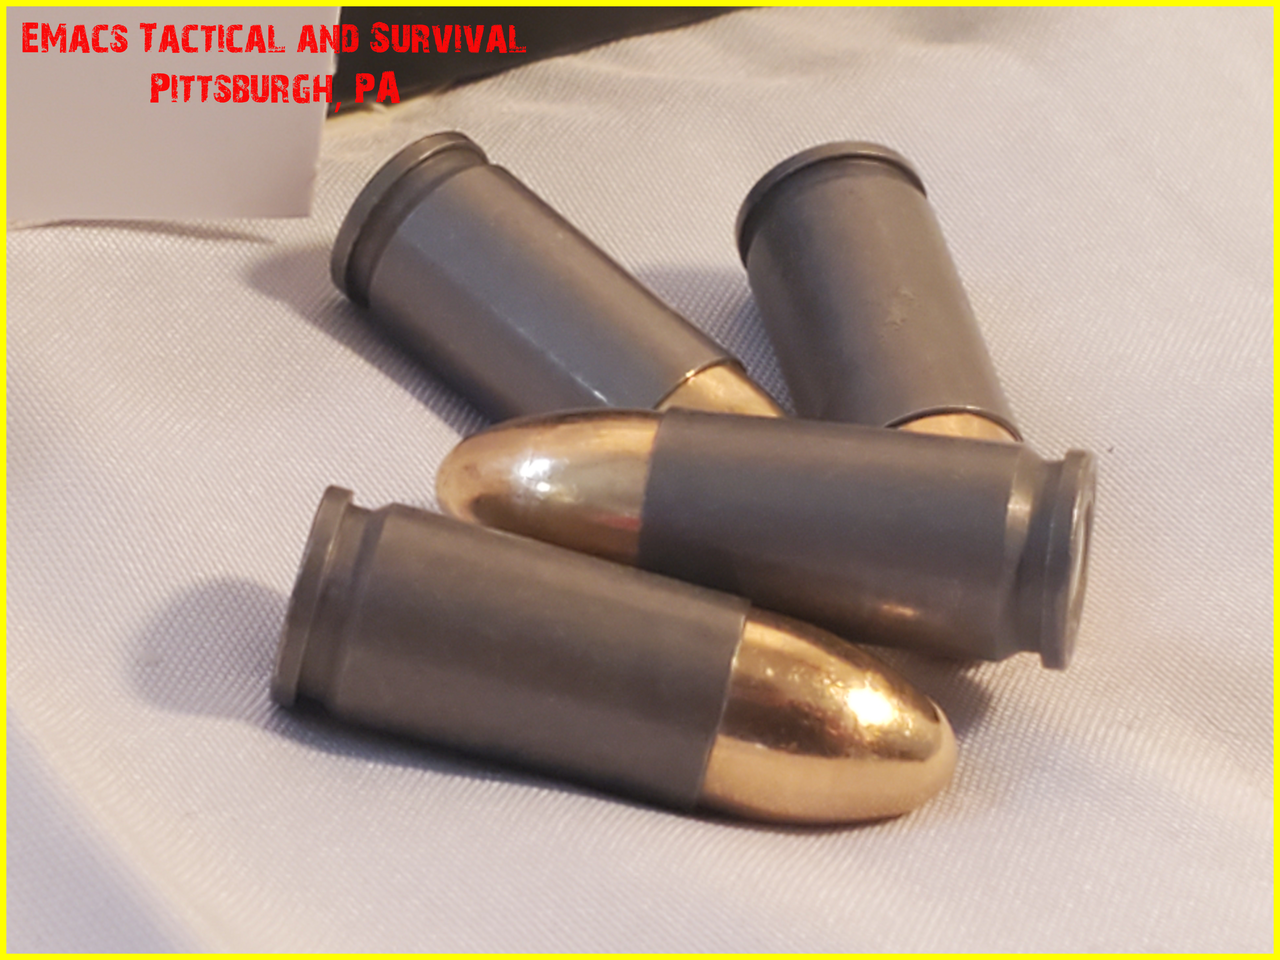 9MM 115gr Red Army Standard Ammunition 50 rounds 1x Box